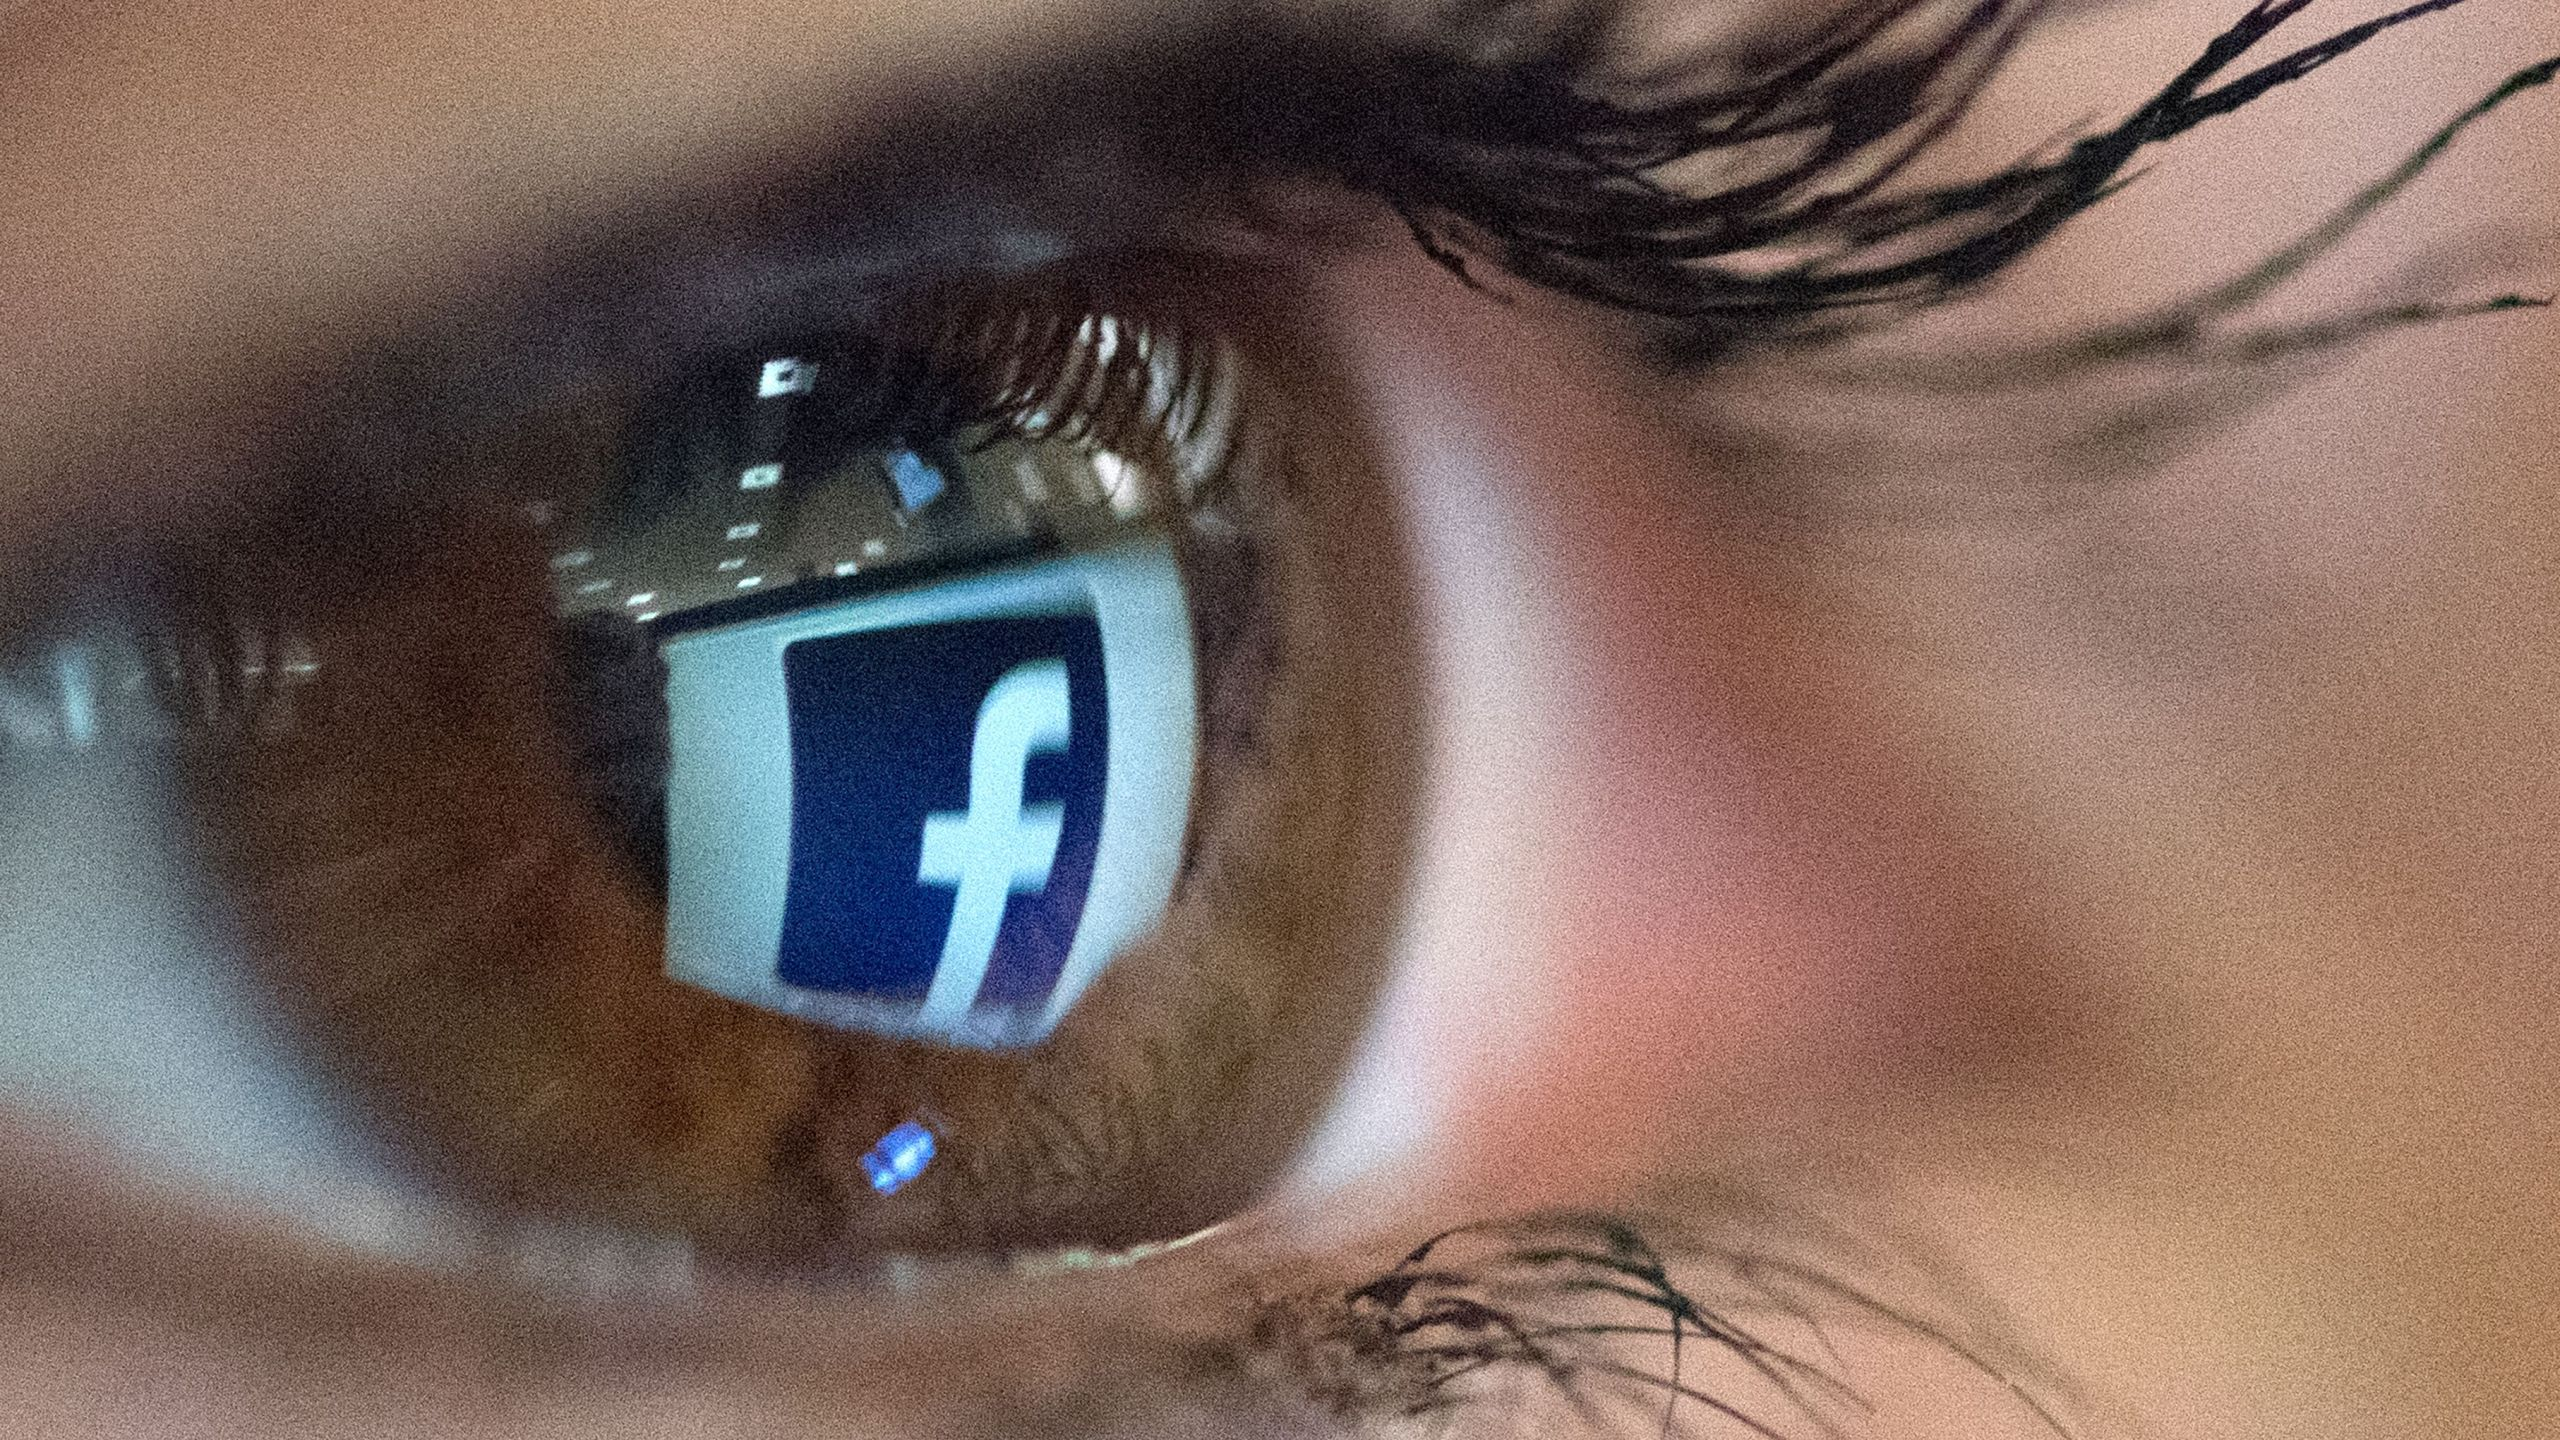 An illustration picture taken on March 22, 2018, in Paris shows a close-up of the Facebook logo in the eye of an AFP staff member posing while she looks at a flipped logo of Facebook. (Credit: Christophe Simon / AFP / Getty Images)